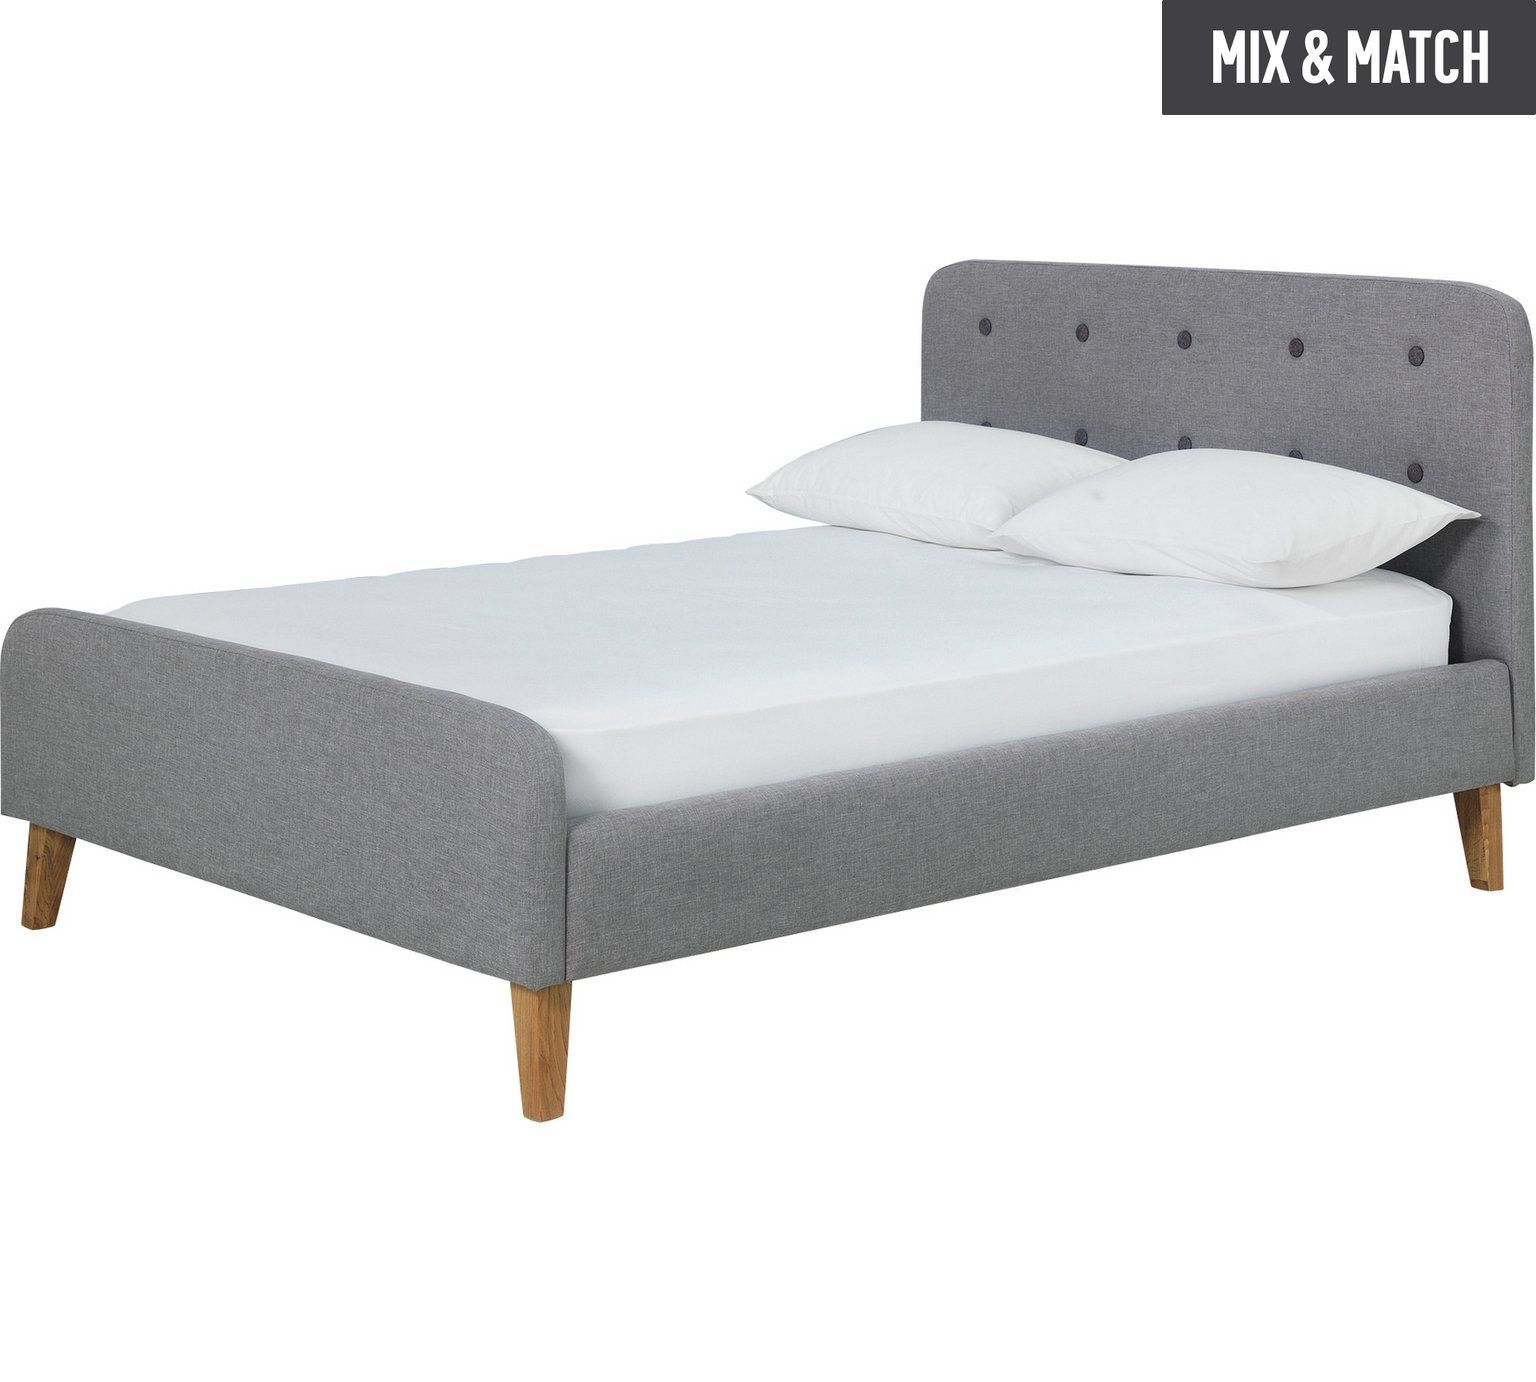 Buy Argos Home Ashby Small Double Bed Frame Grey Bed Frames Grey Bed Frame Small Double Bed Frames Bed Frame